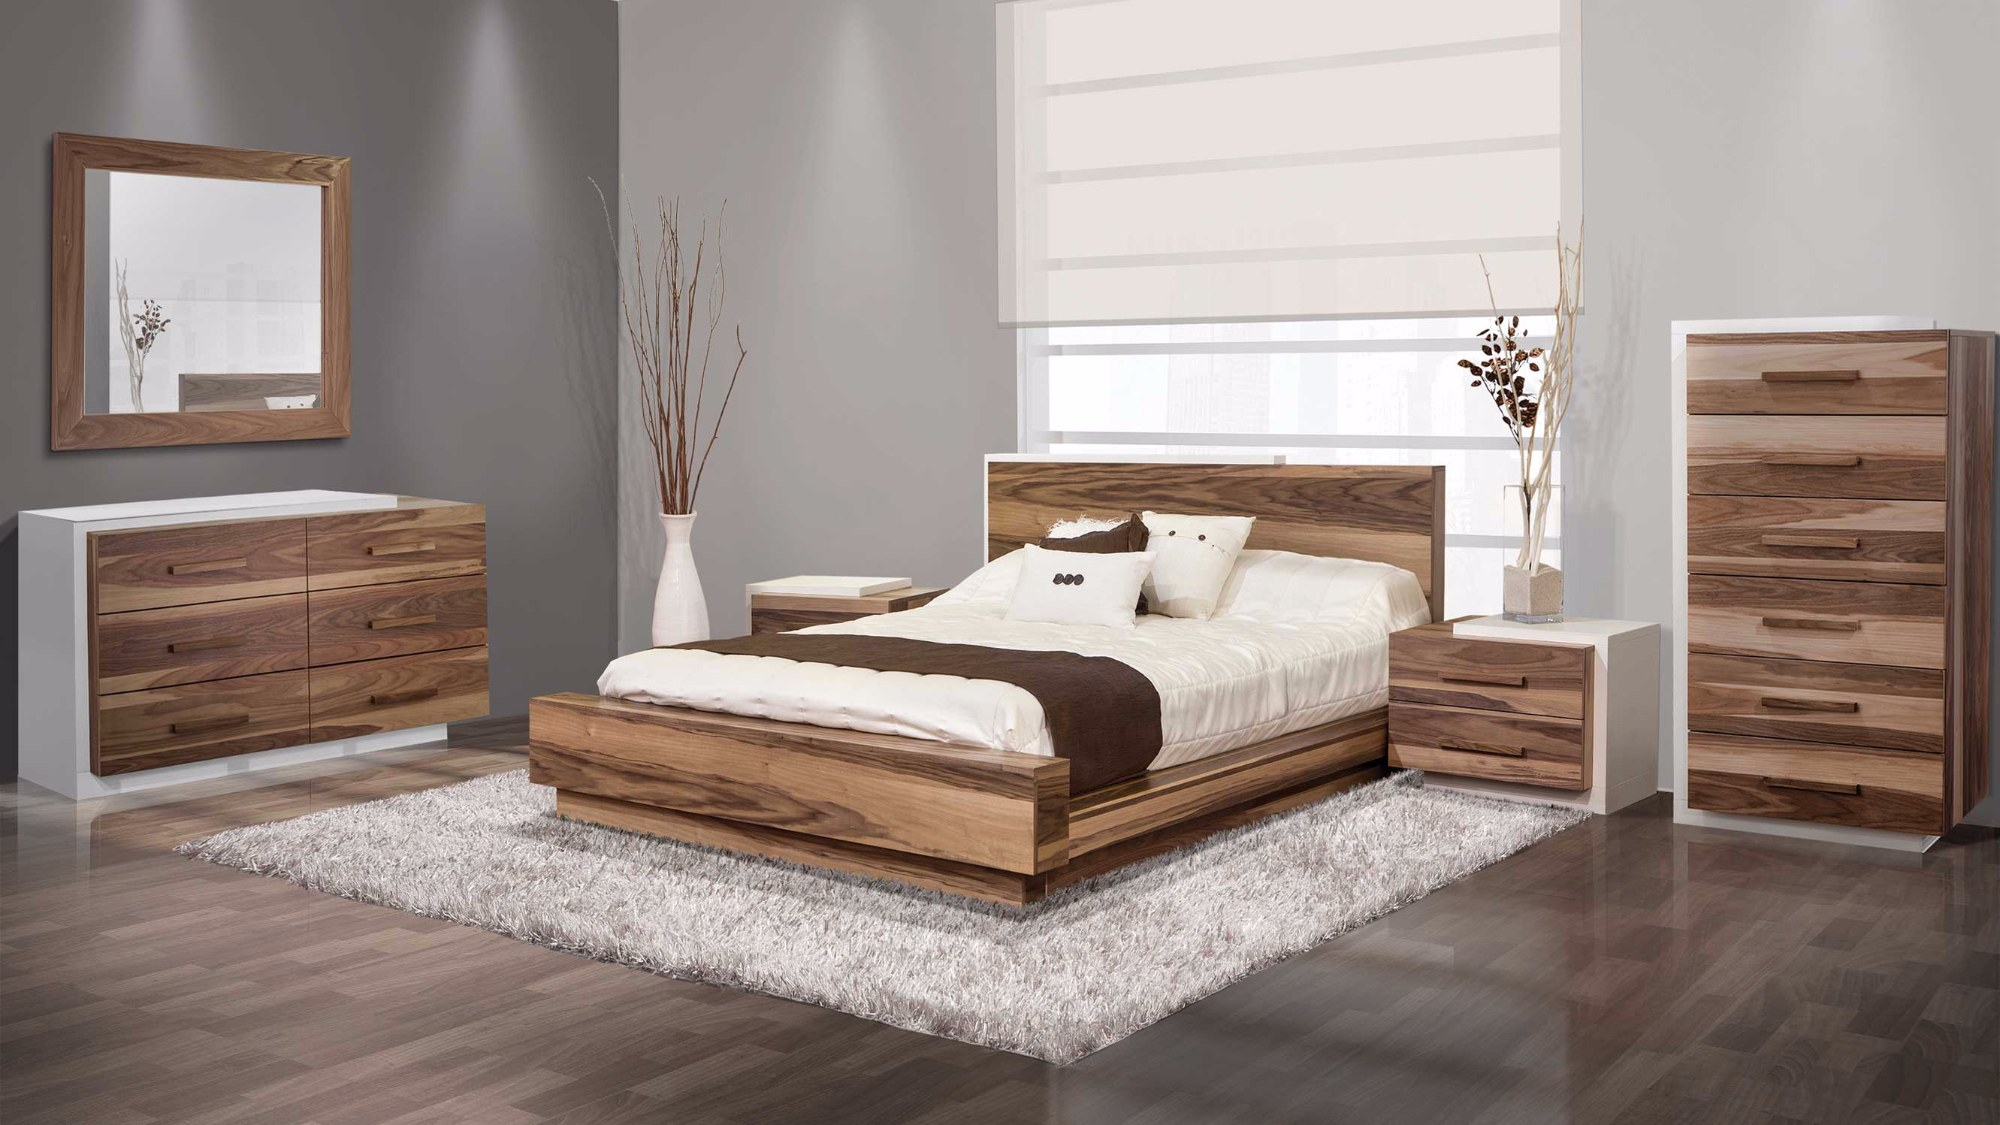 espace literie sp cialiste de la literie lattes 34 literie lattes 34970. Black Bedroom Furniture Sets. Home Design Ideas